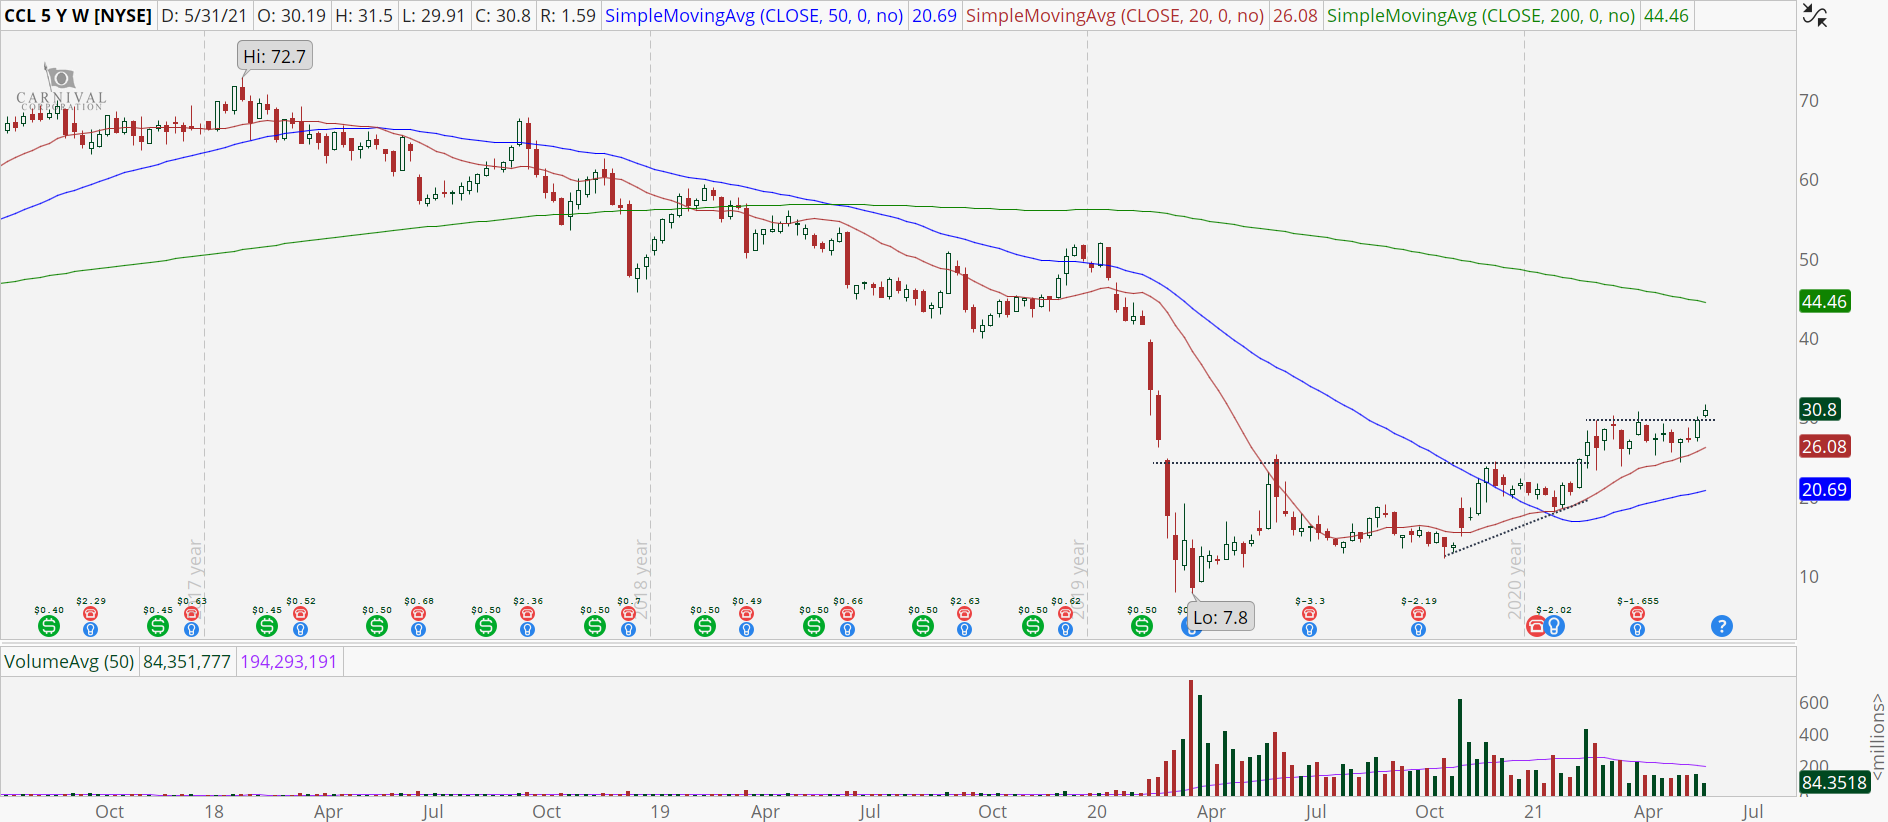 Carnival (CCL) weekly stock chart with bullish breakout.